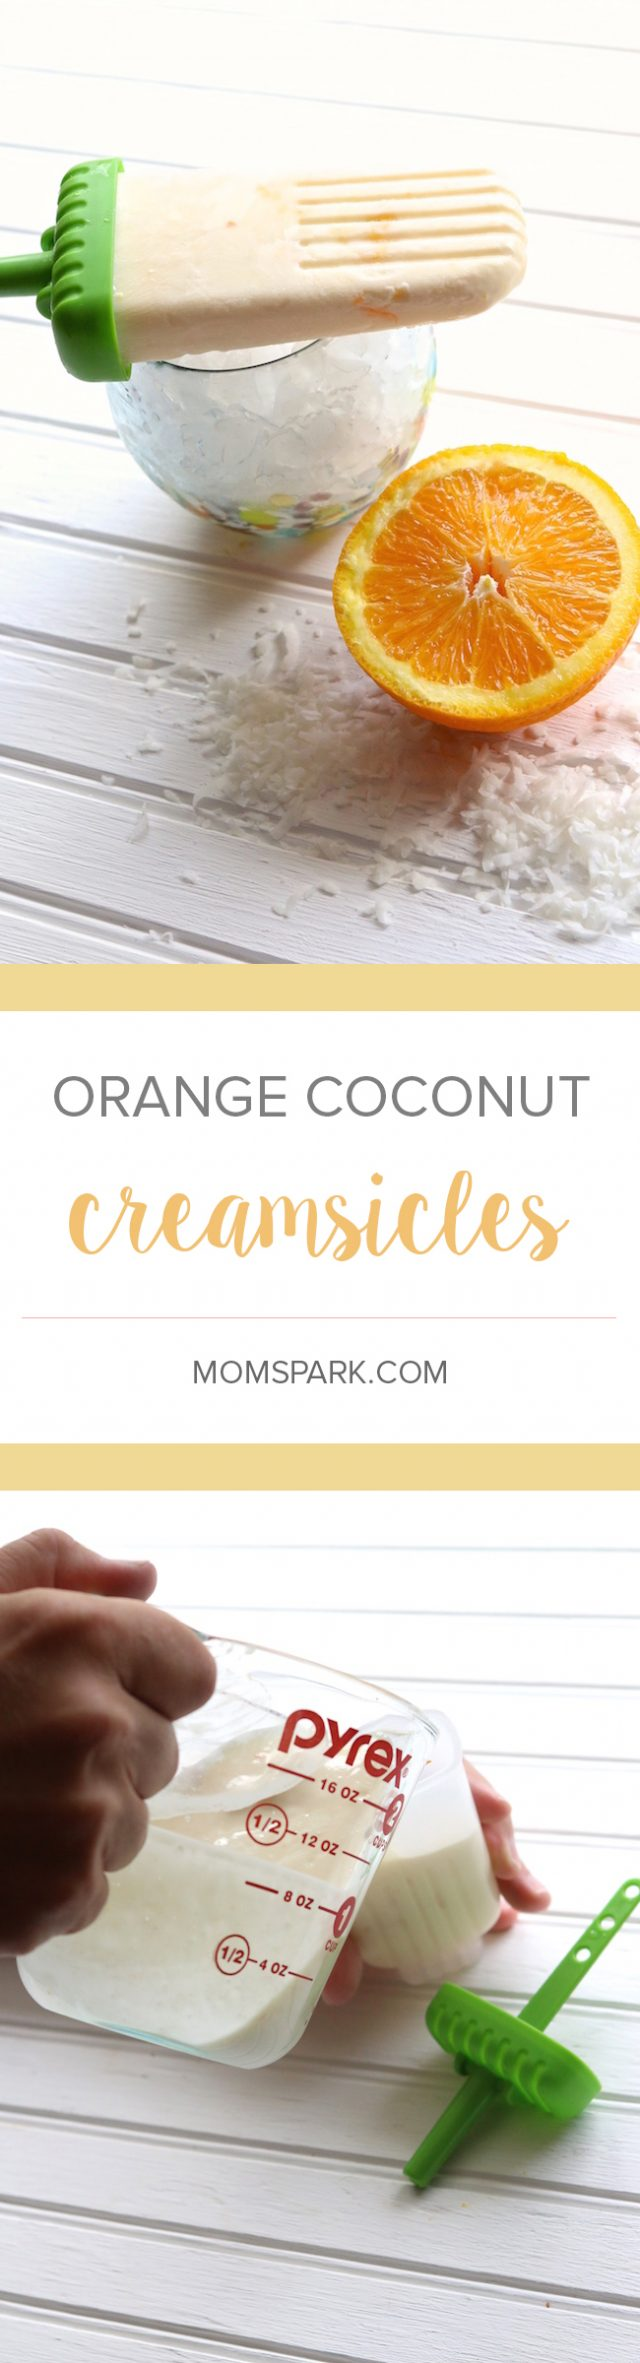 Orange Coconut Creamsicle Ice Pop Popsicle Recipe Summer is here and if you're anything like me, you are craving cool, refreshing snacks. These Orange Coconut Creamsicles are not only healthy, but absolutely delicious and easy to make. They are perfect way to cool off after a day out in the hot sun!